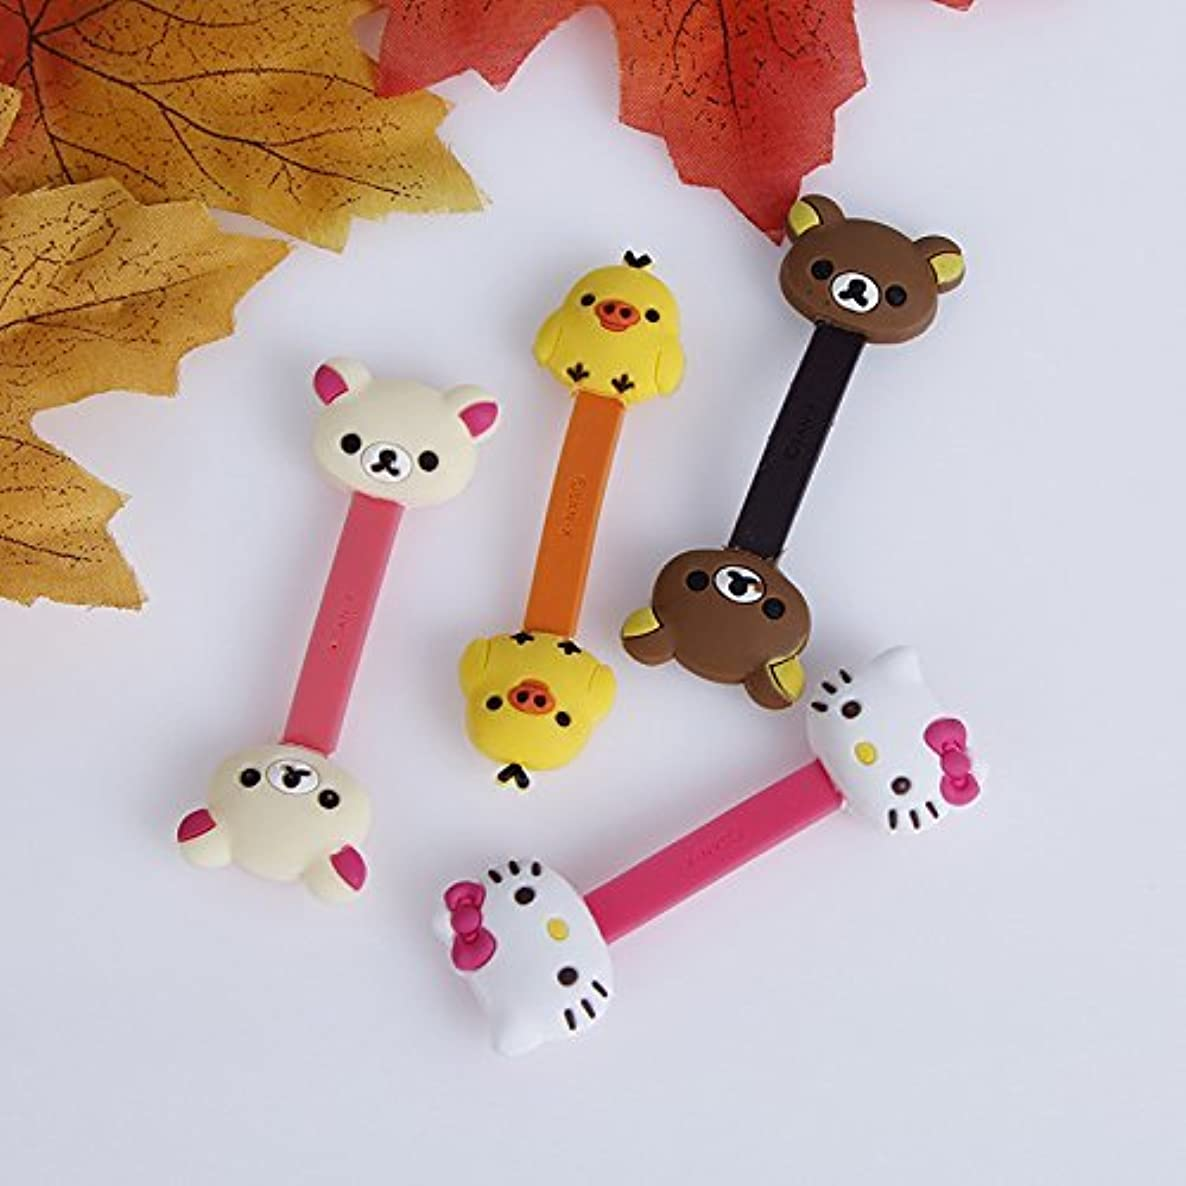 Restonc 4 Pcs Cable Tie Cord Organizer Wire Wrap Headset Headphone Earphone Wrap Winder Cute Cartoon Animal Cable Manager 4 (Fowl, Bear, Creamy Bear, Cat)